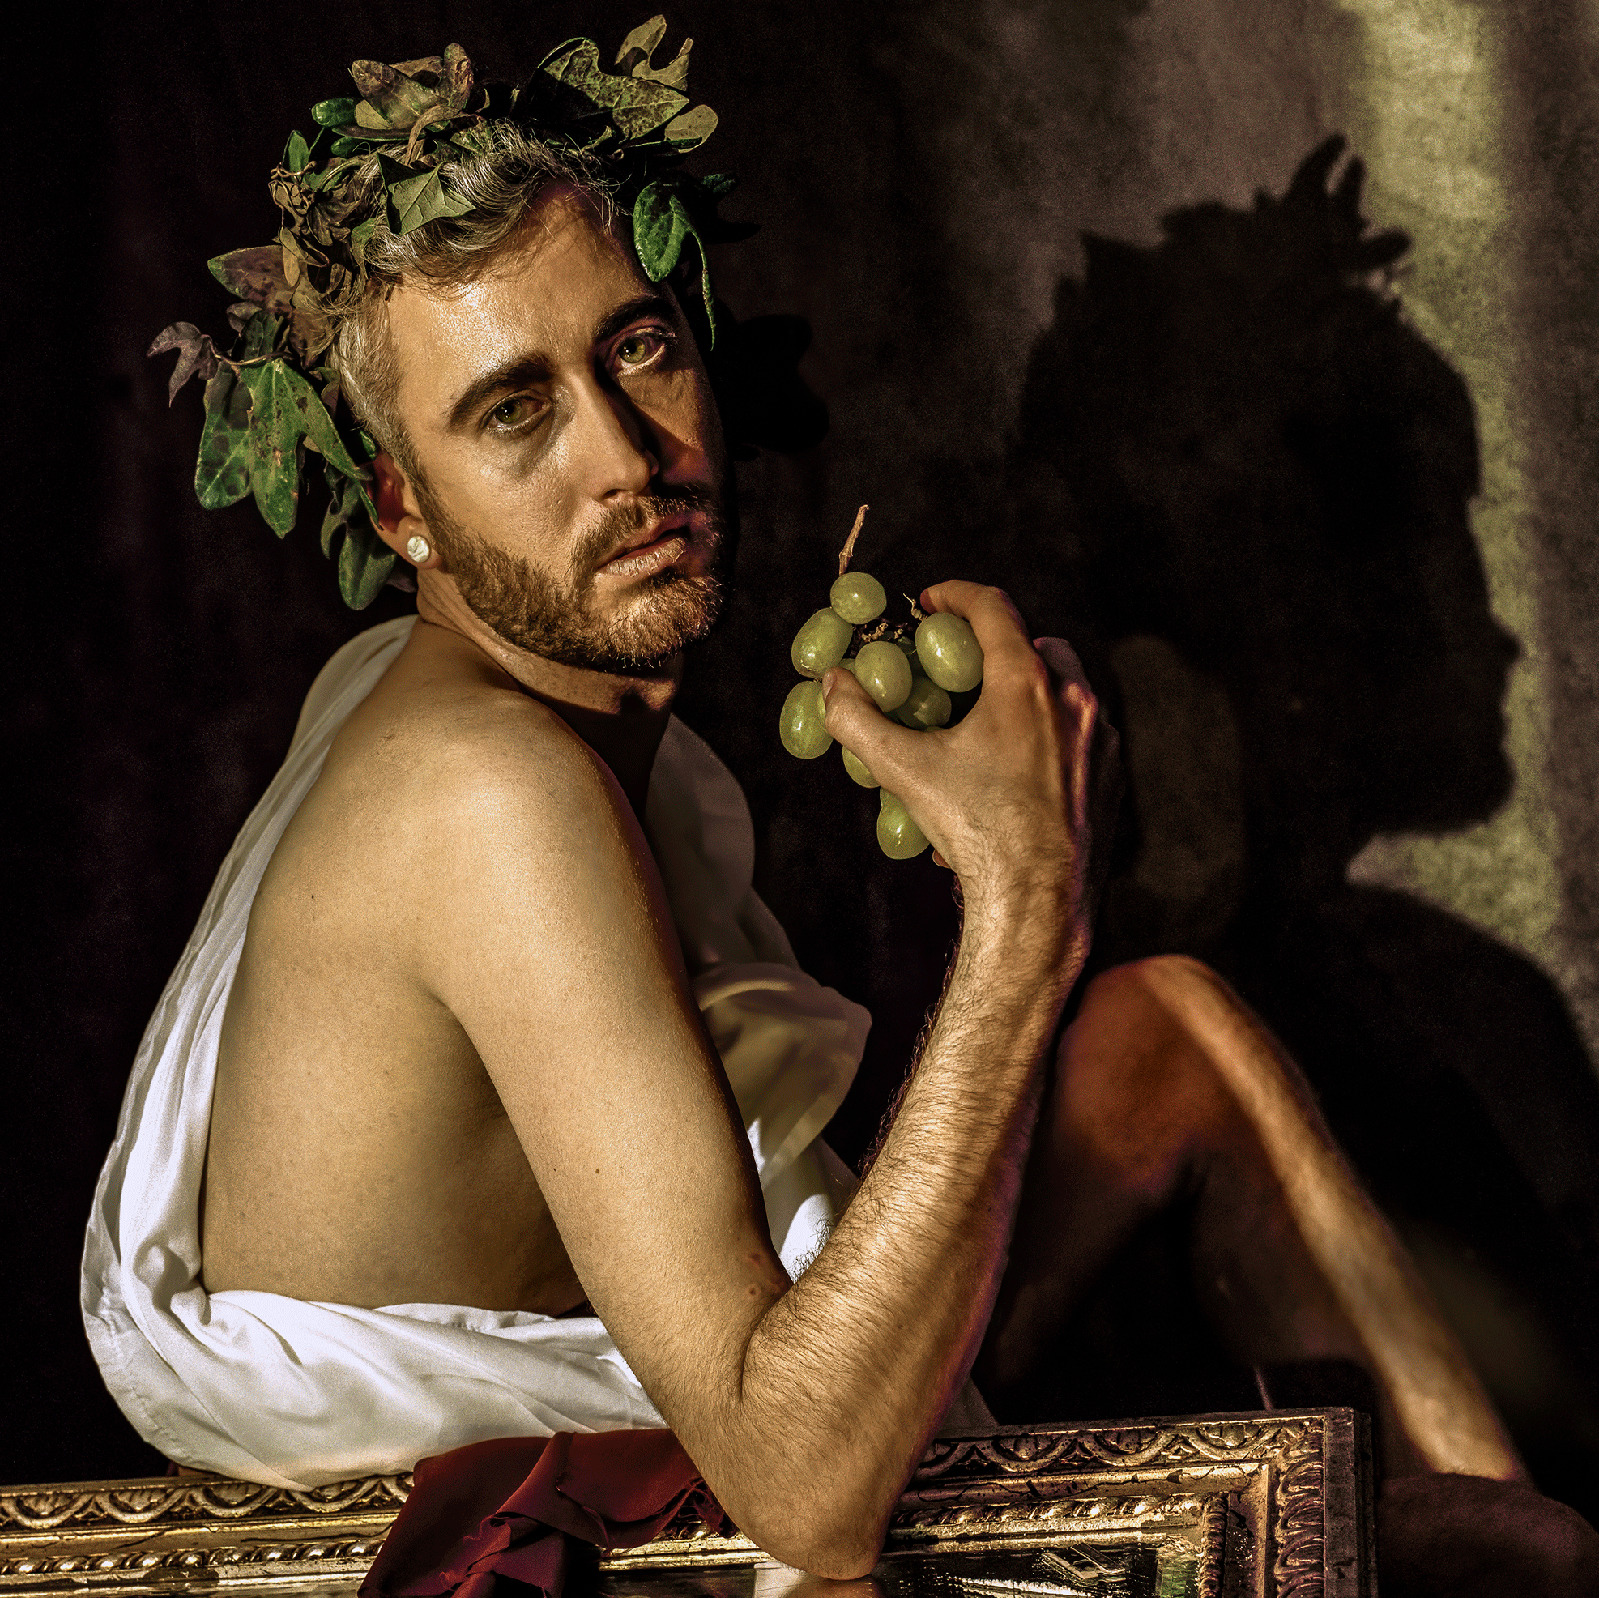 Sick Bacchus: A Grindr Love Story